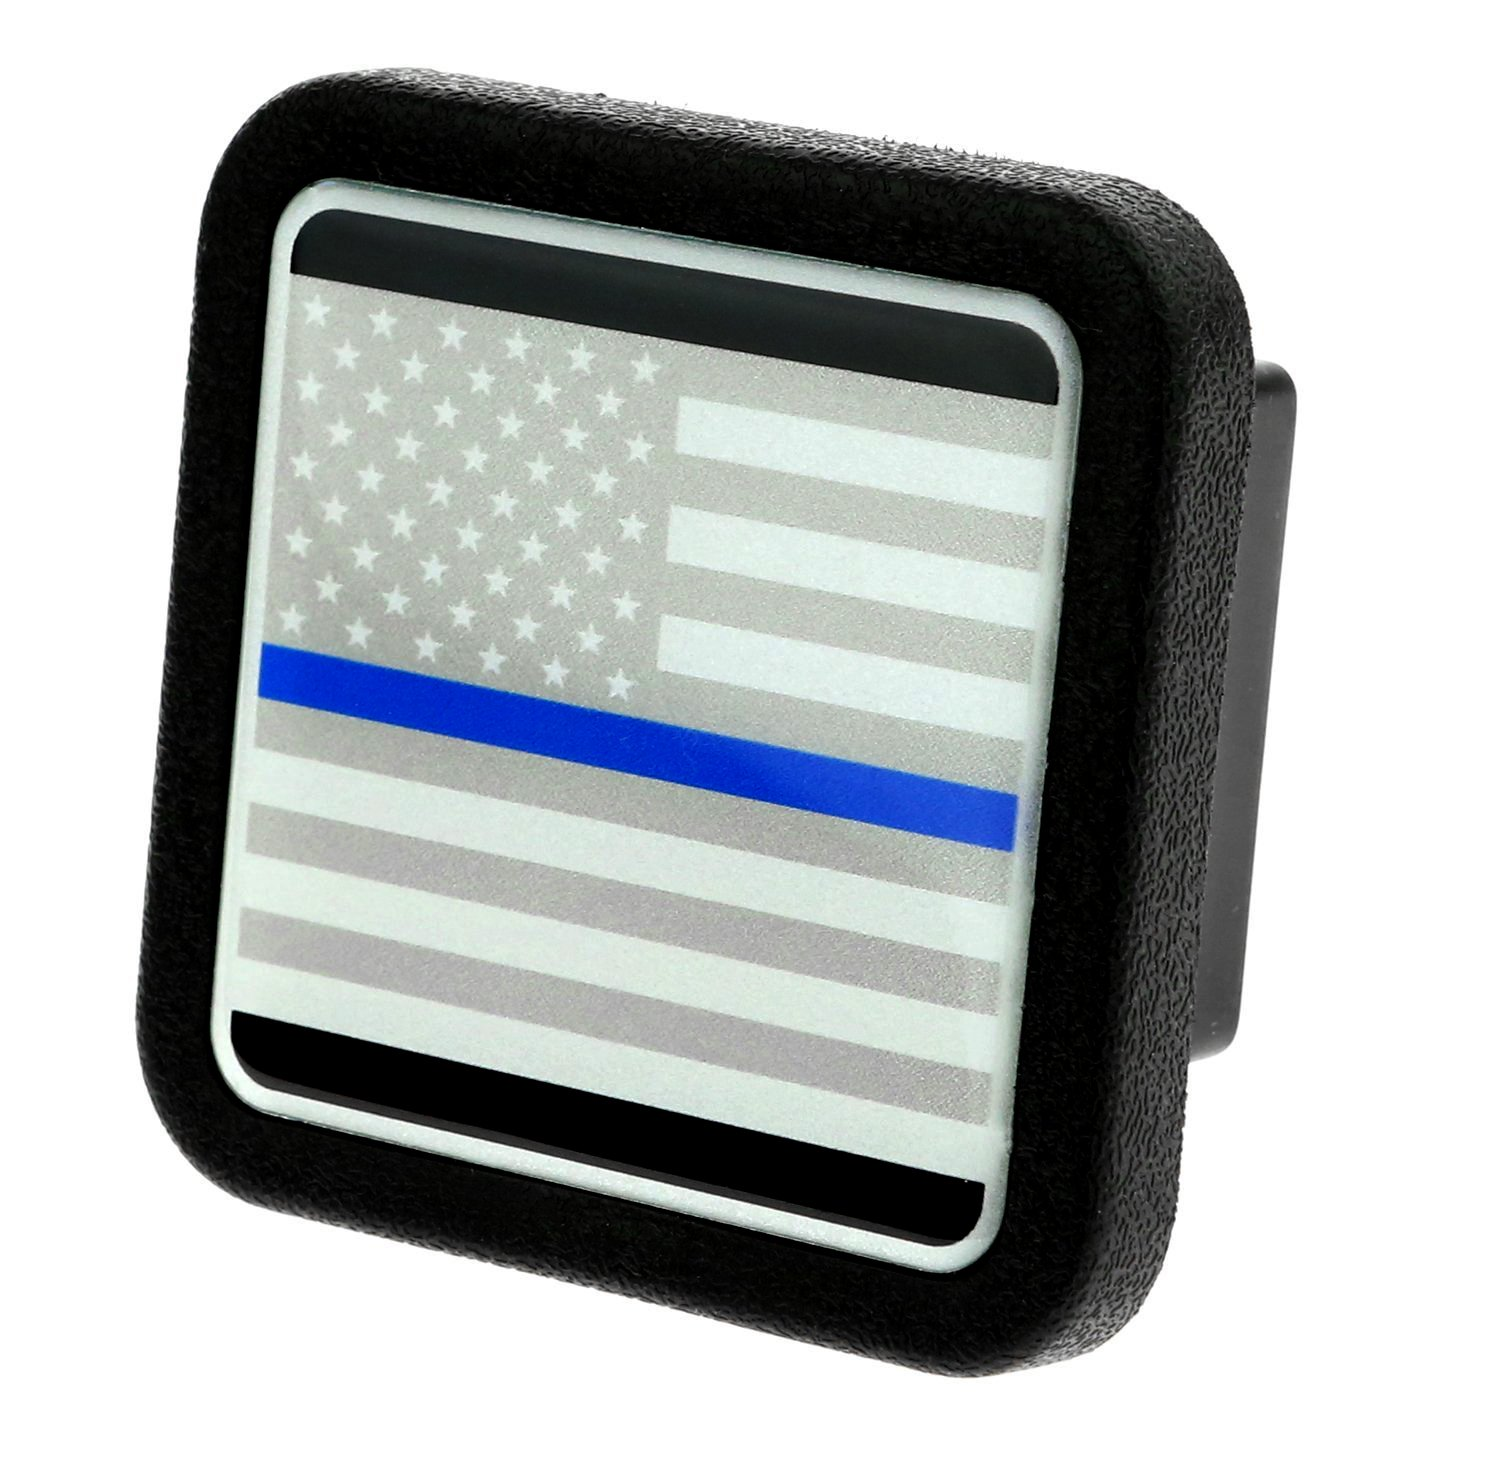 Reflective Trailer Hitch Cover Plug Insert (Fits 2' Receivers, Thin Red Line) eVerHITCH